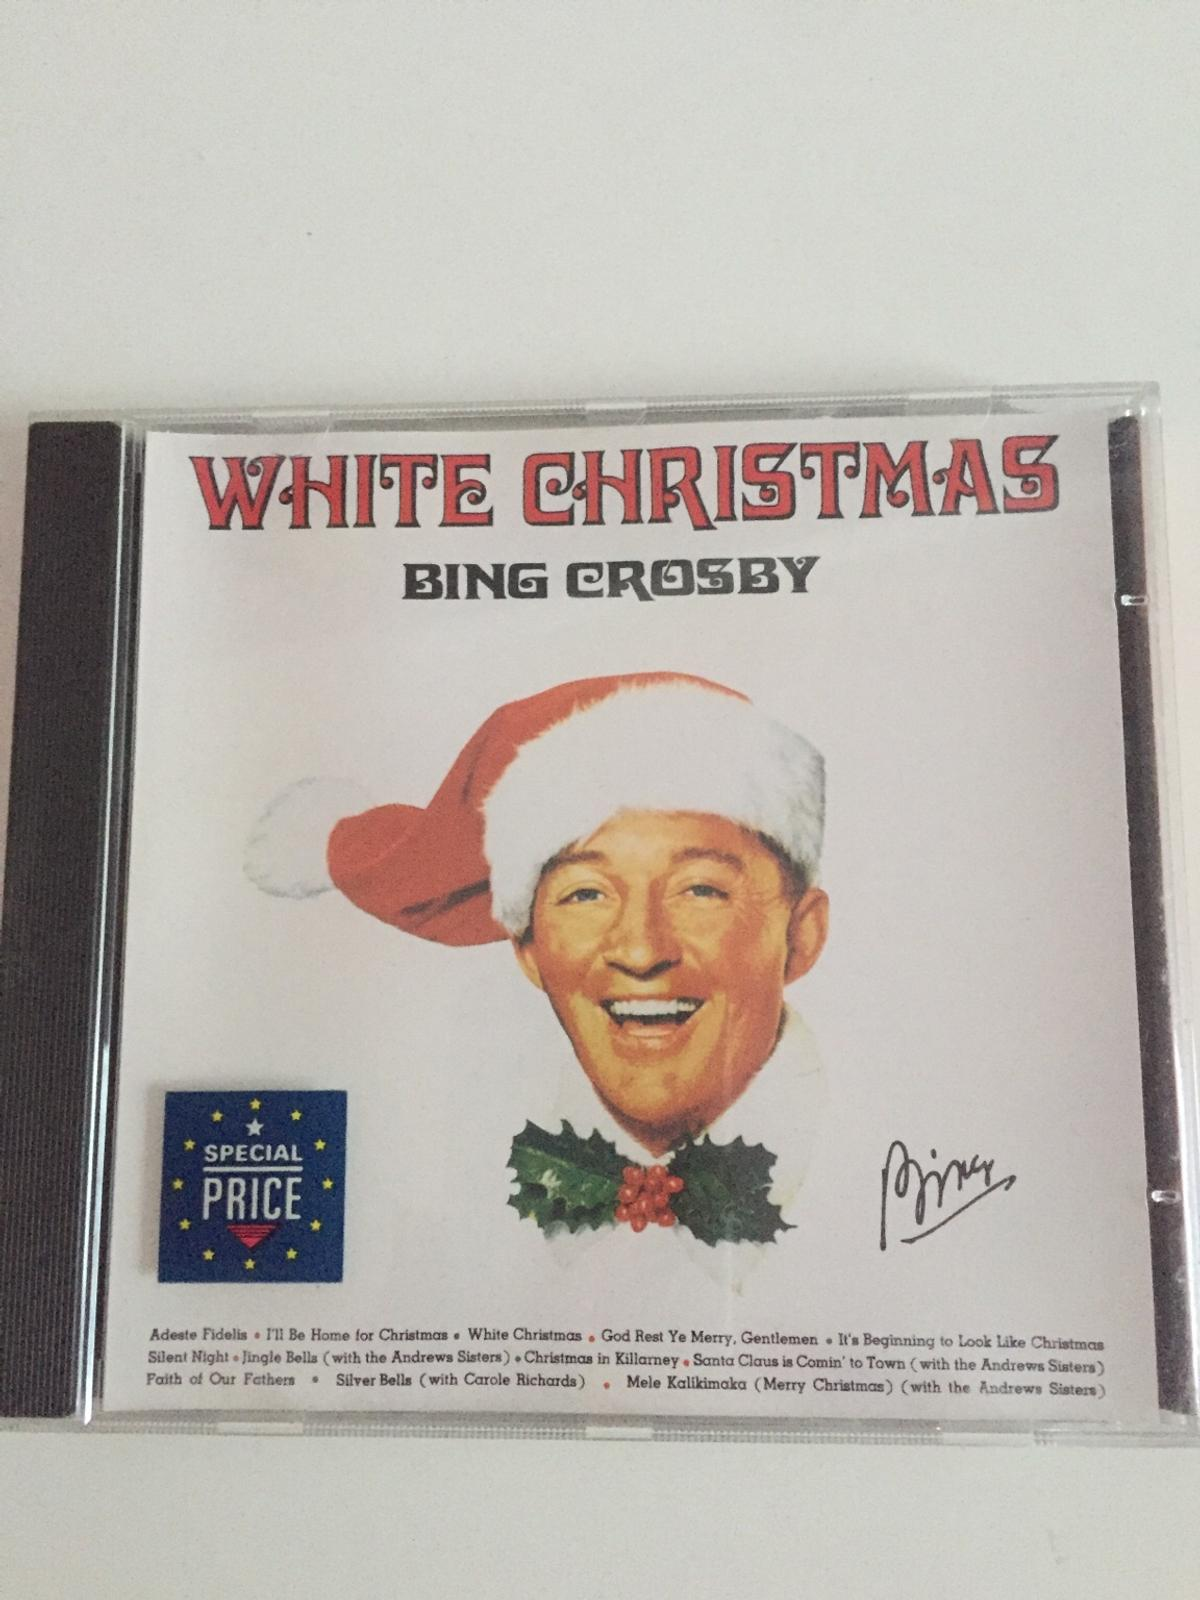 Cd White Christmas Bing Crosby Weihnachtslied In 22880 Wedel For 4 00 For Sale Shpock